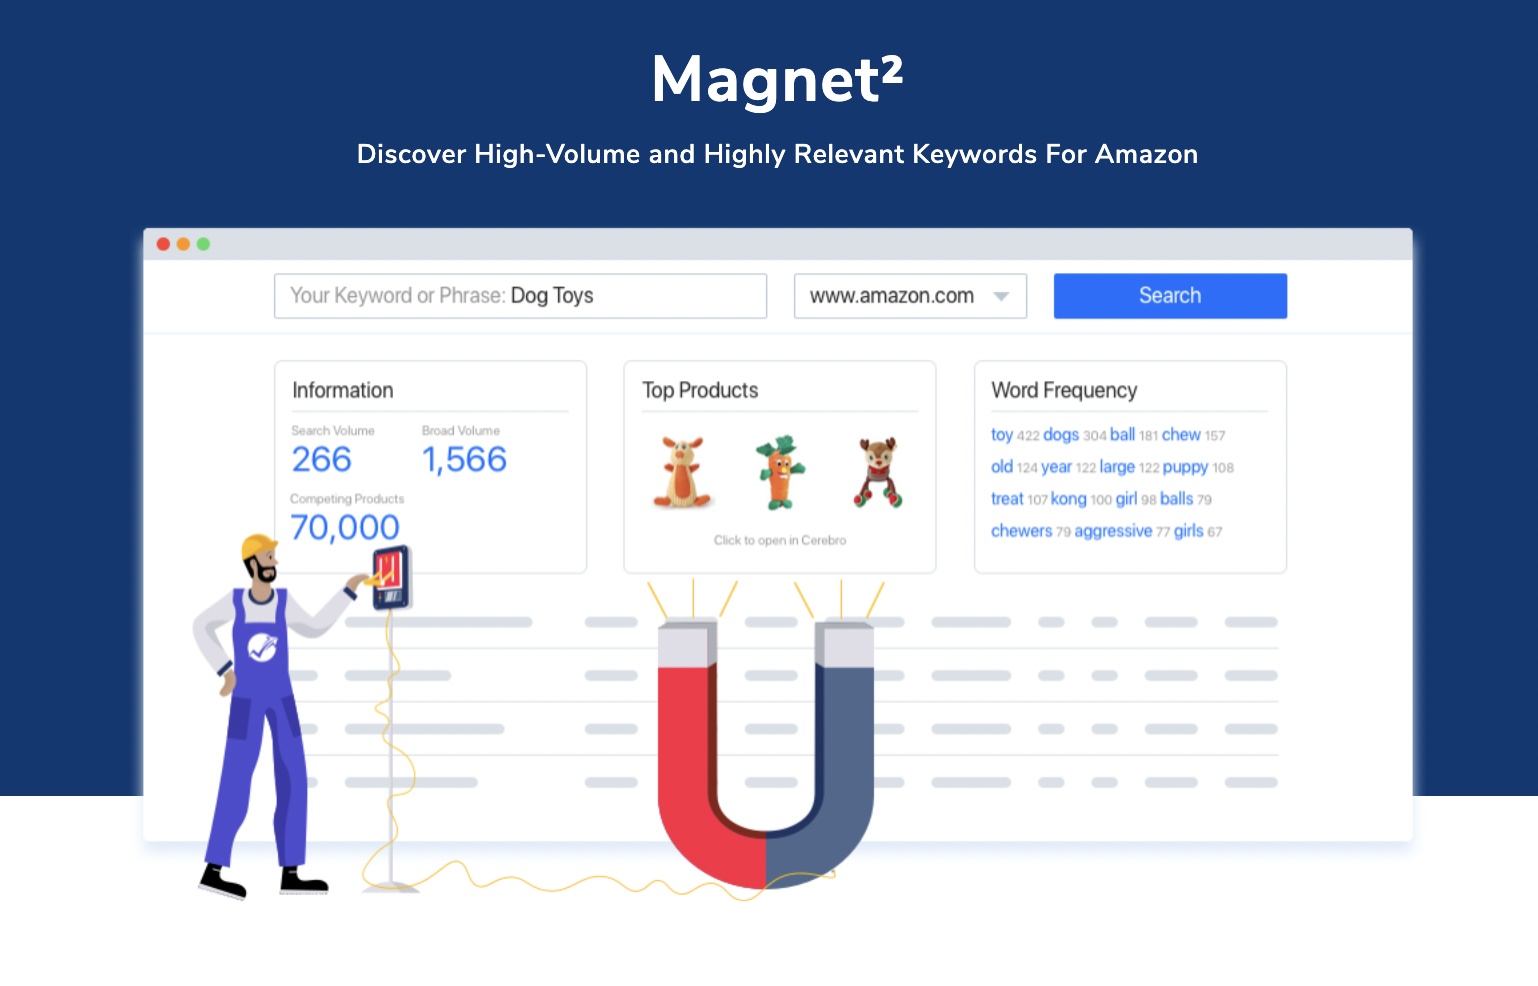 Magnet by Helium 10